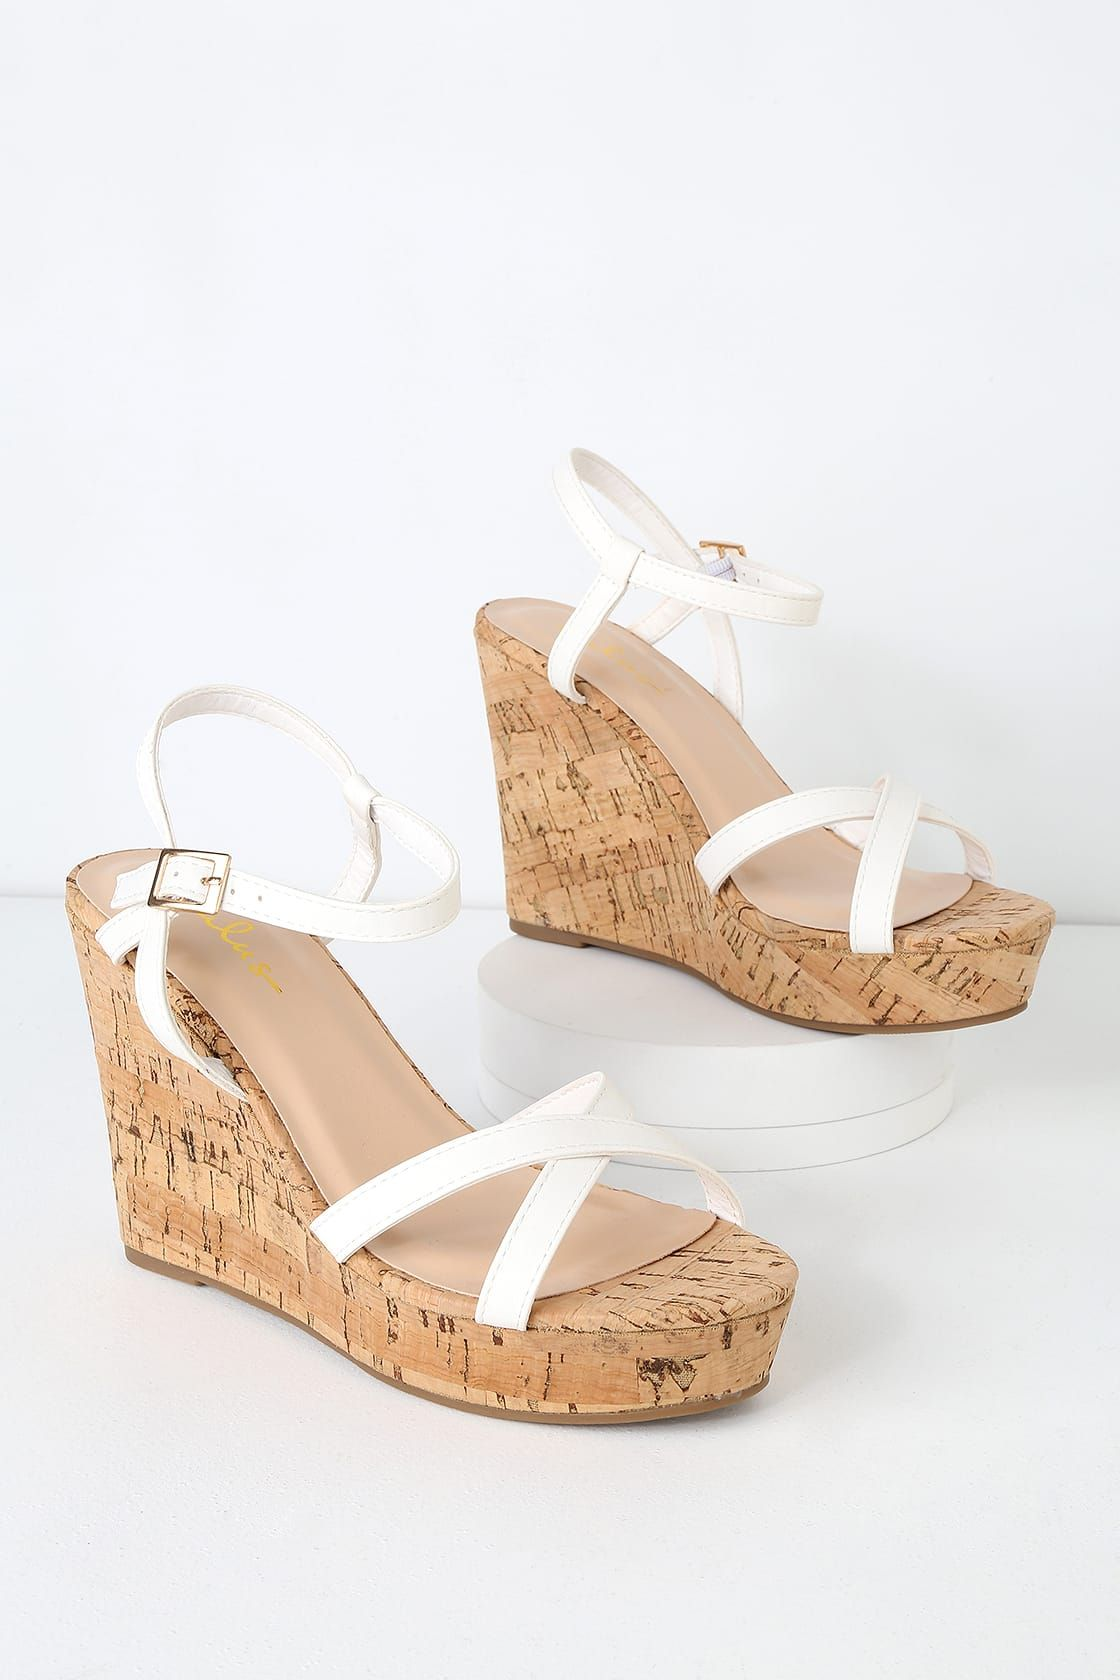 181641444 Cute White Wedge Sandals - Vegan Leather Wedge Sandals - Wedges